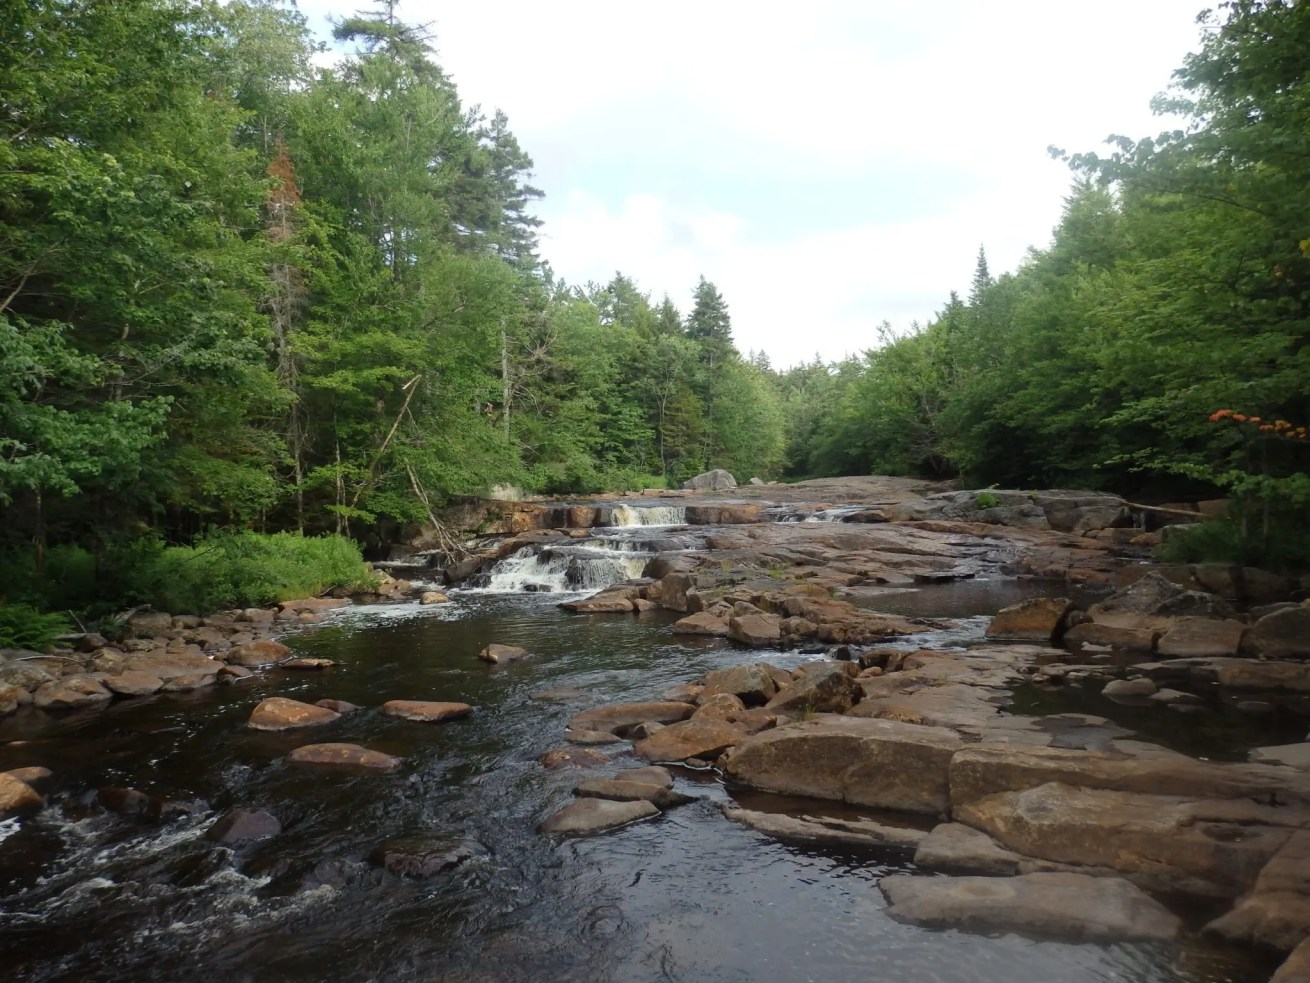 Twitchell Creek - Falls #2 - Eagle Bay, Herkimer County, New York